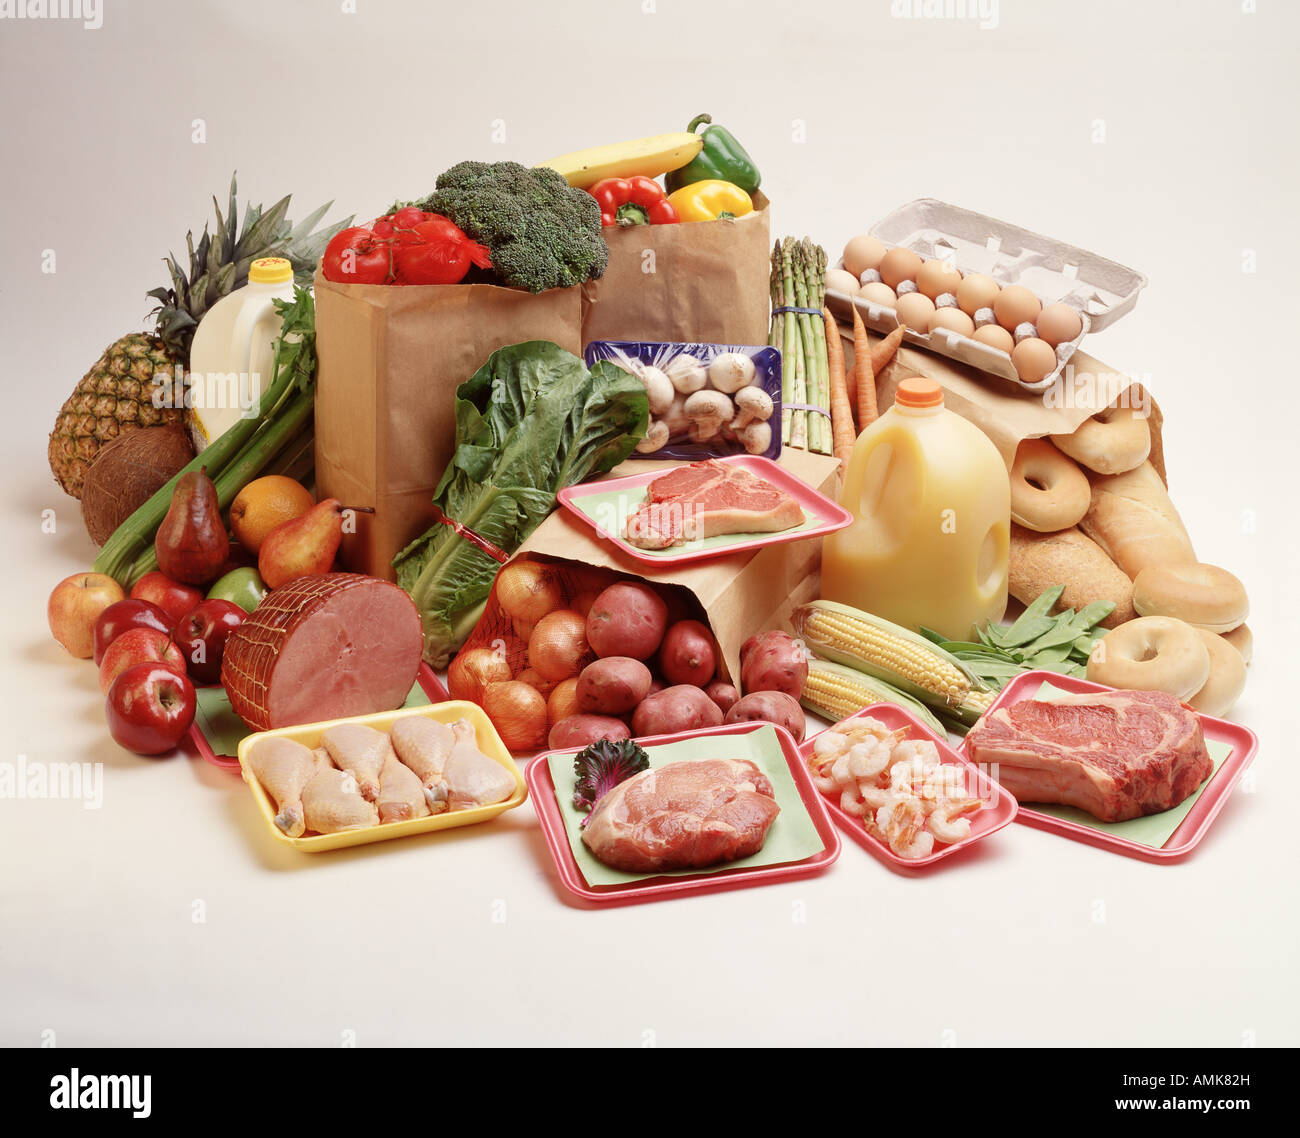 Basic Food Groups Fruit Vegetable Meat Poultry Dairy